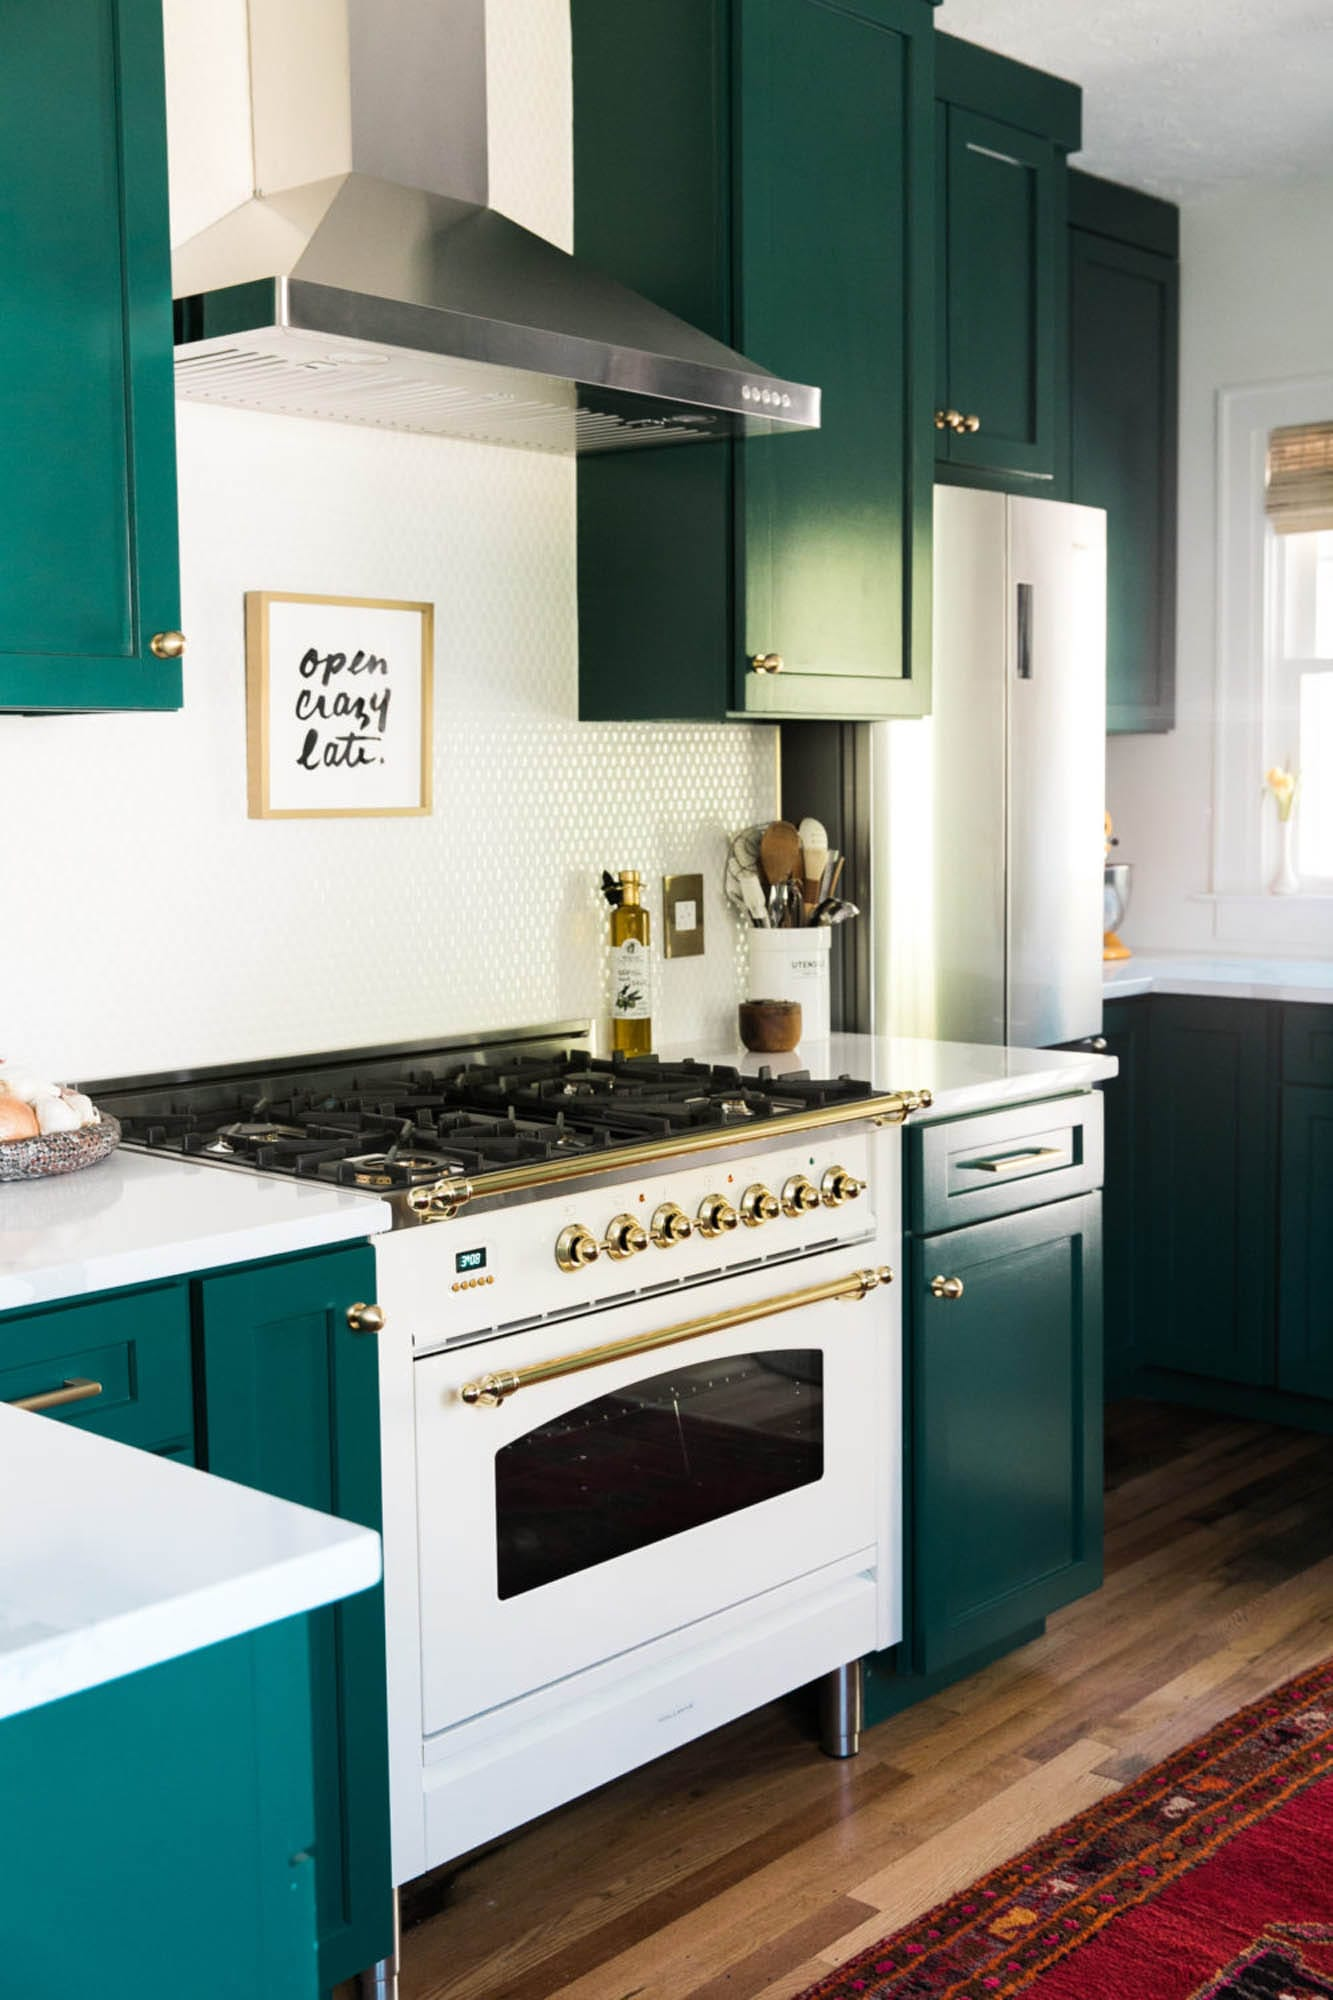 Green cabinetry and white penny round tile